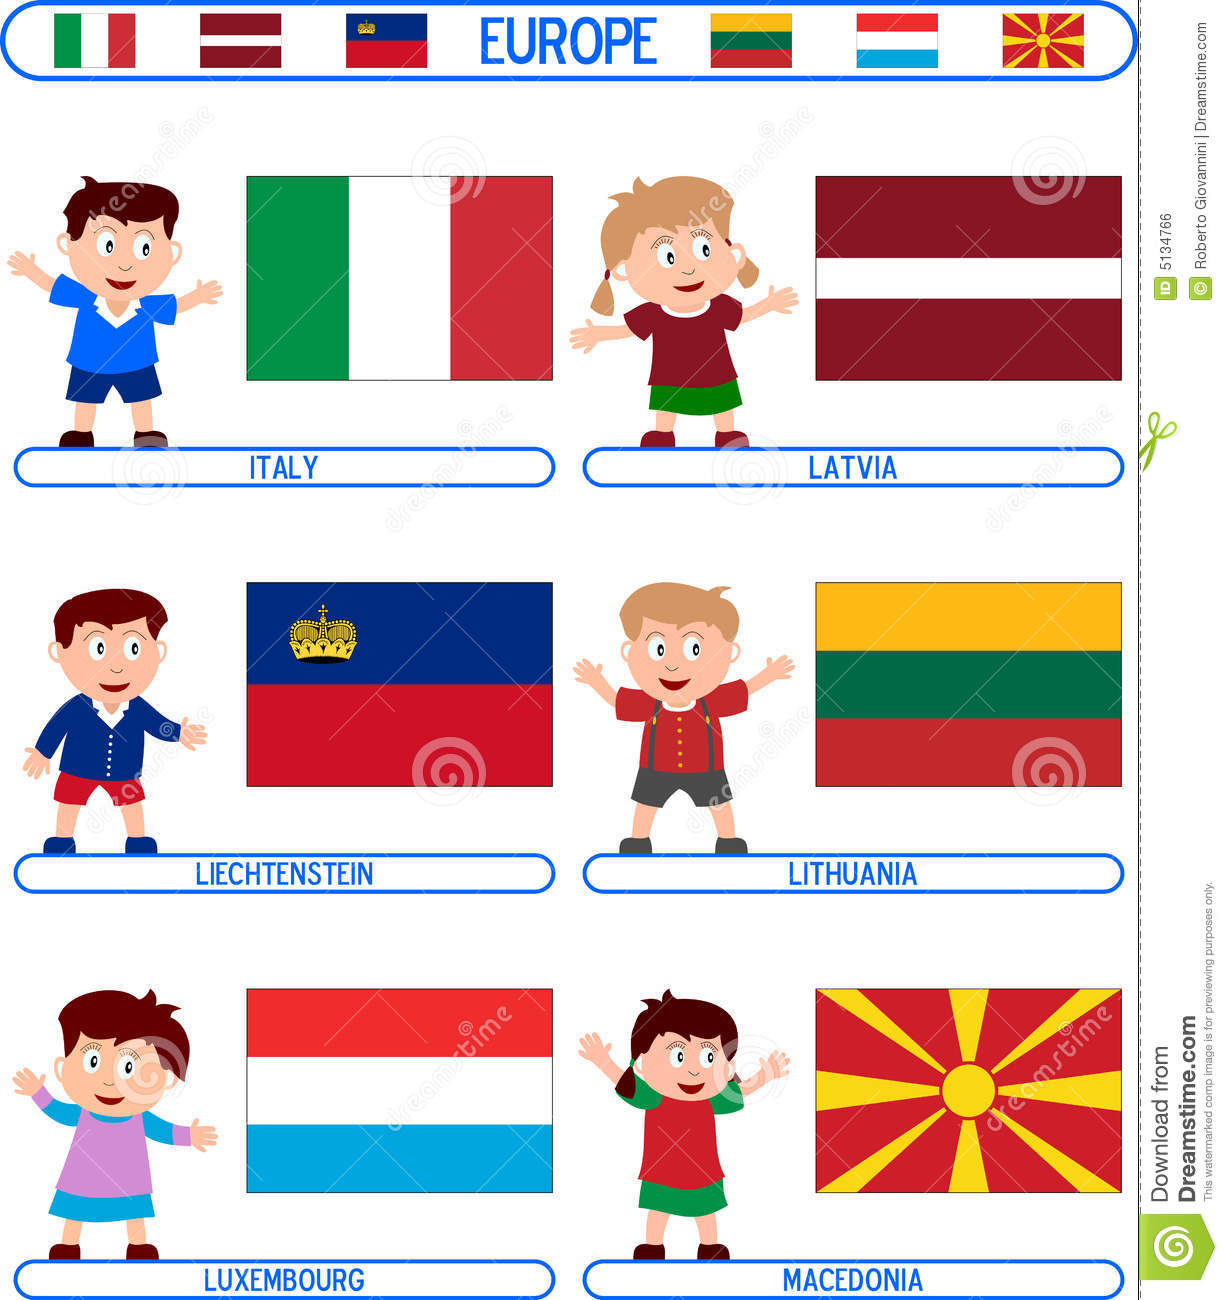 Uncategorized Flag For Kids kids flags europe 4 royalty free stock image 5134766 photo download flags